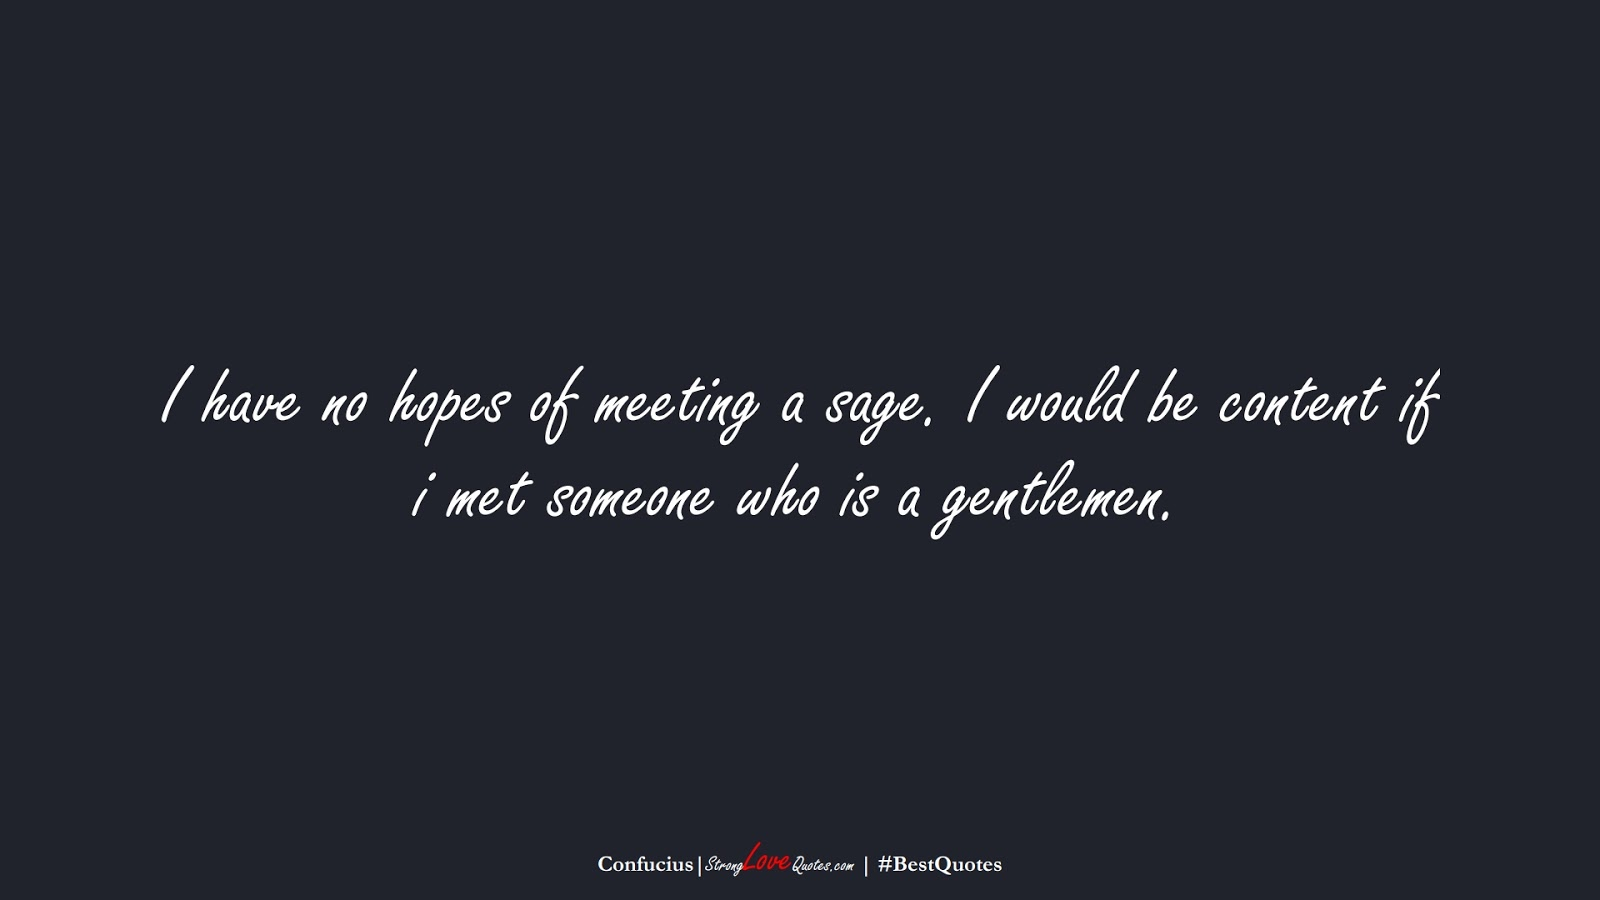 I have no hopes of meeting a sage. I would be content if i met someone who is a gentlemen. (Confucius);  #BestQuotes